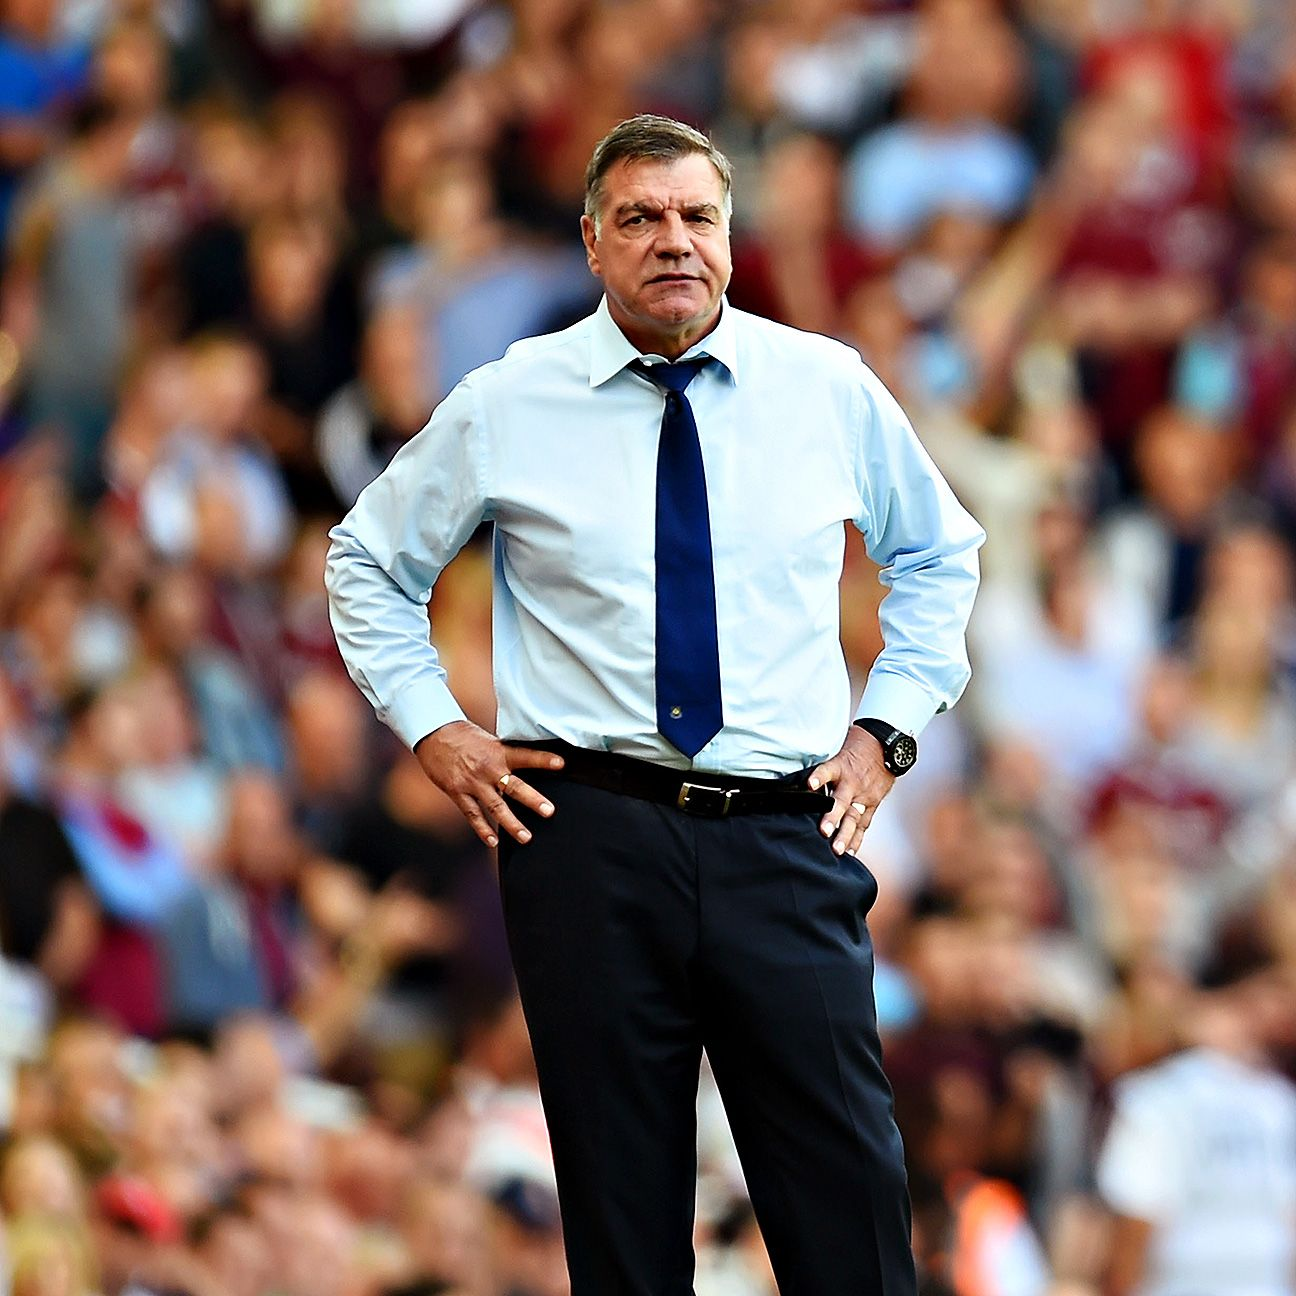 Sam Allardyce's West Ham would pull off a clean sweep of the reigning Premier League champions should they win Saturday at Manchester City.